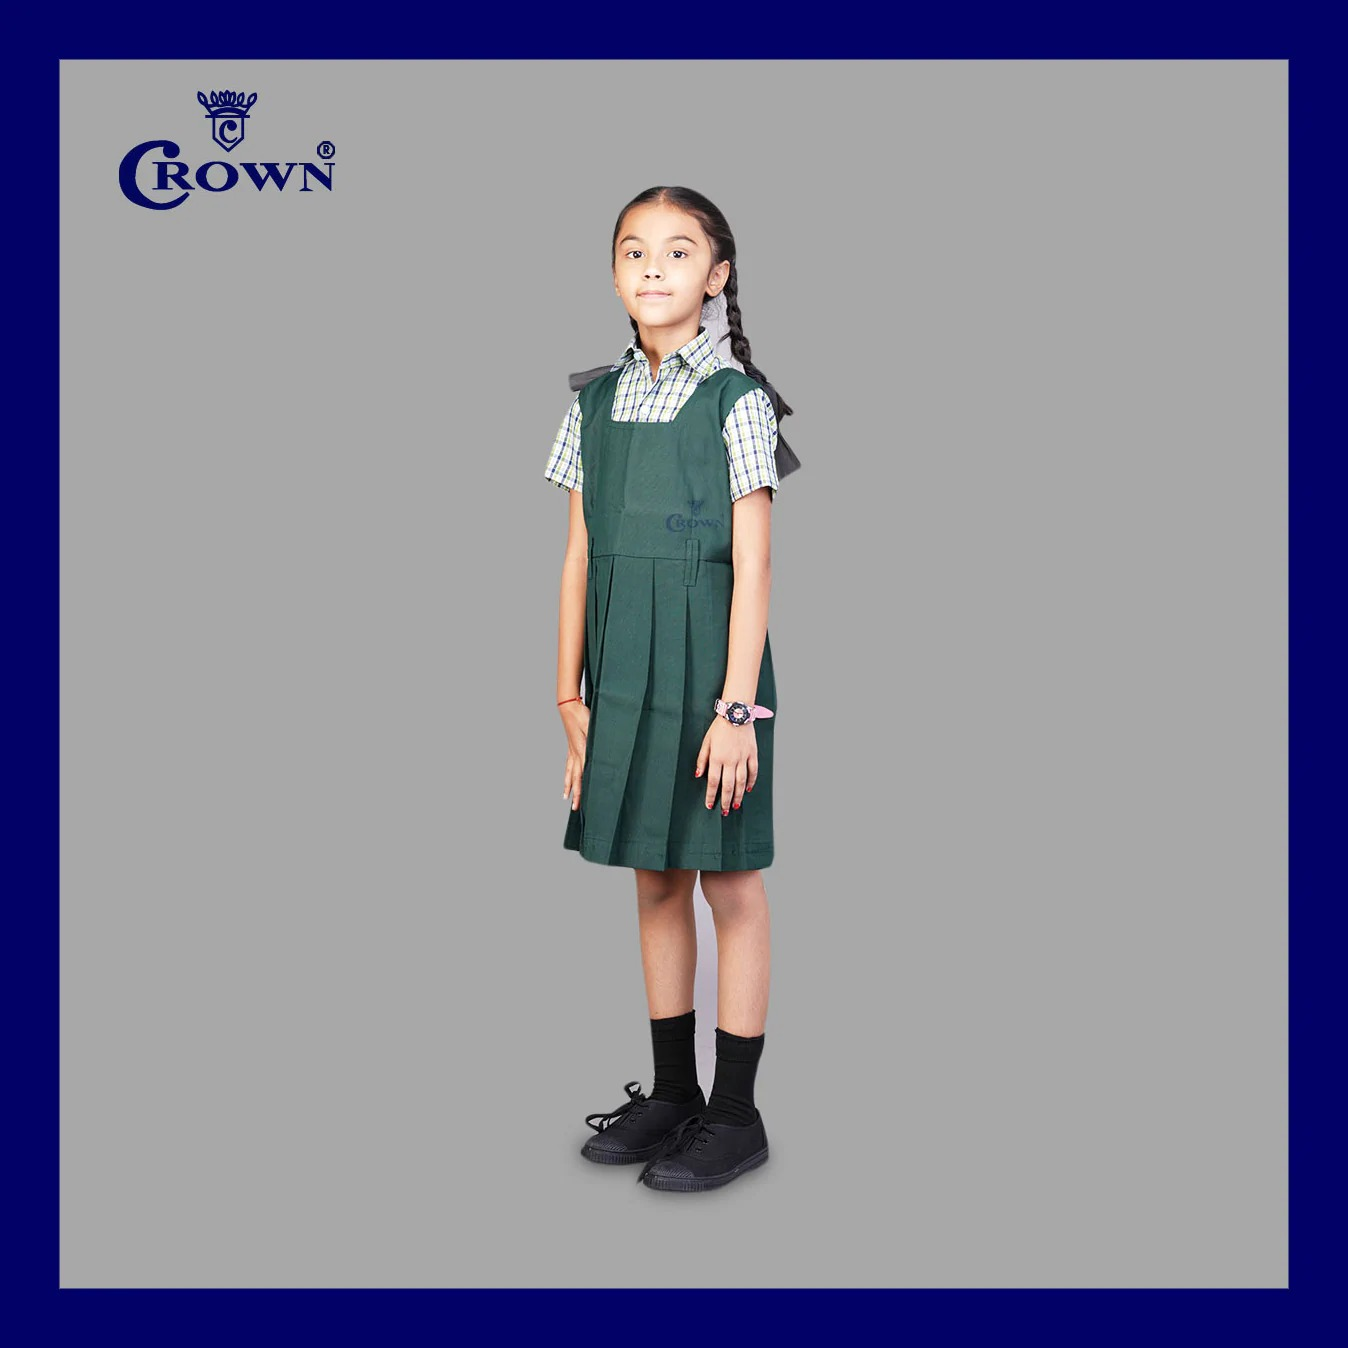 Crown TN Govt 1 - 5thStd Bottle Green Colour Pinafore (10-11 Years)